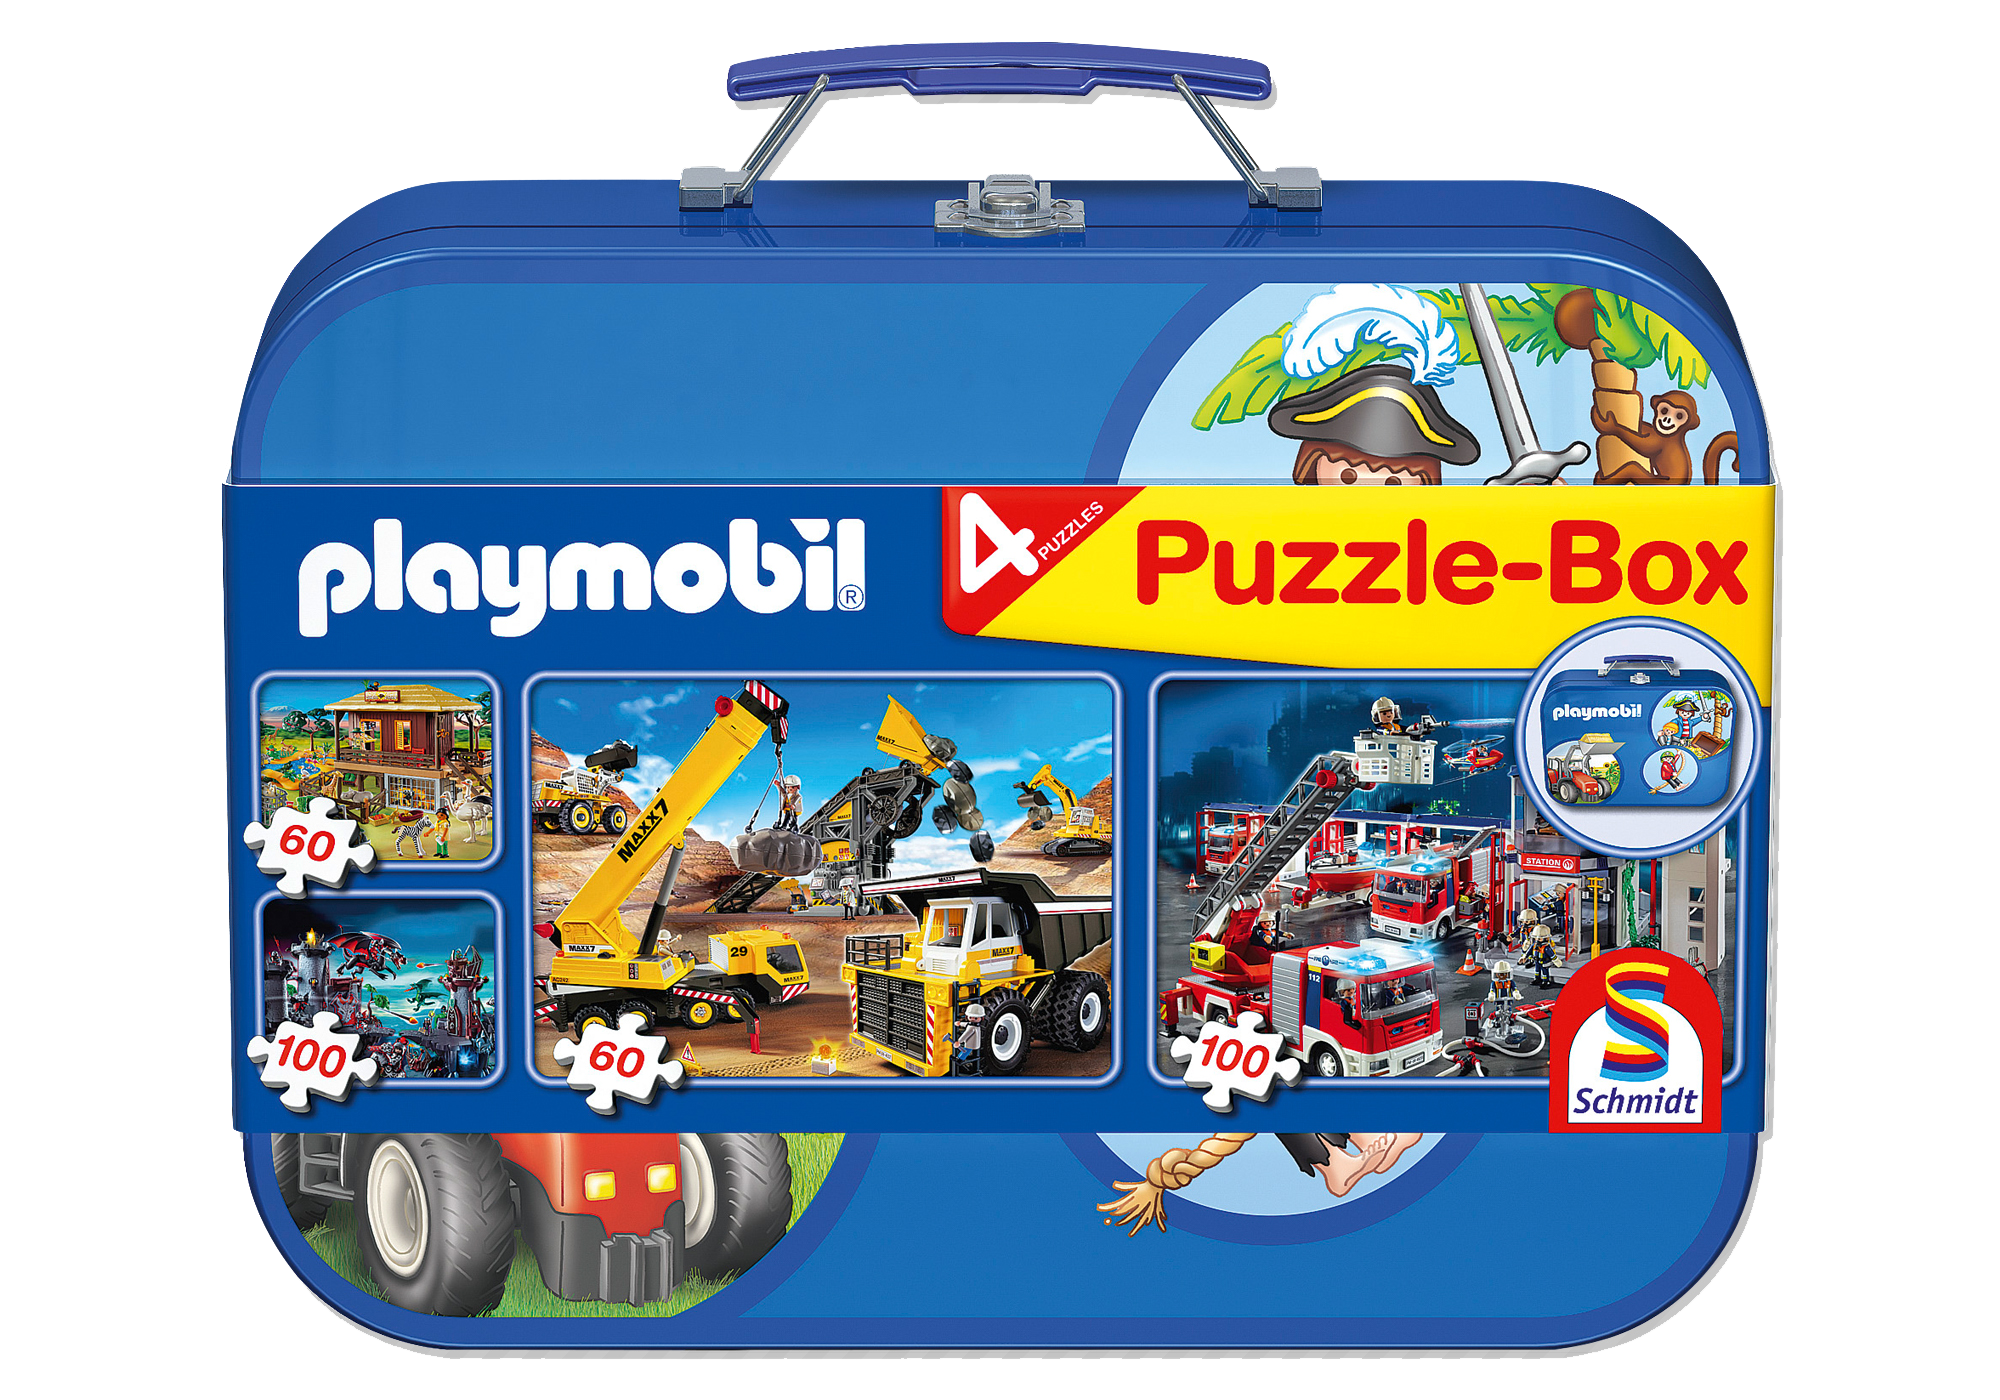 http://media.playmobil.com/i/playmobil/80247_product_detail/Puzzelkoffer - vier in één